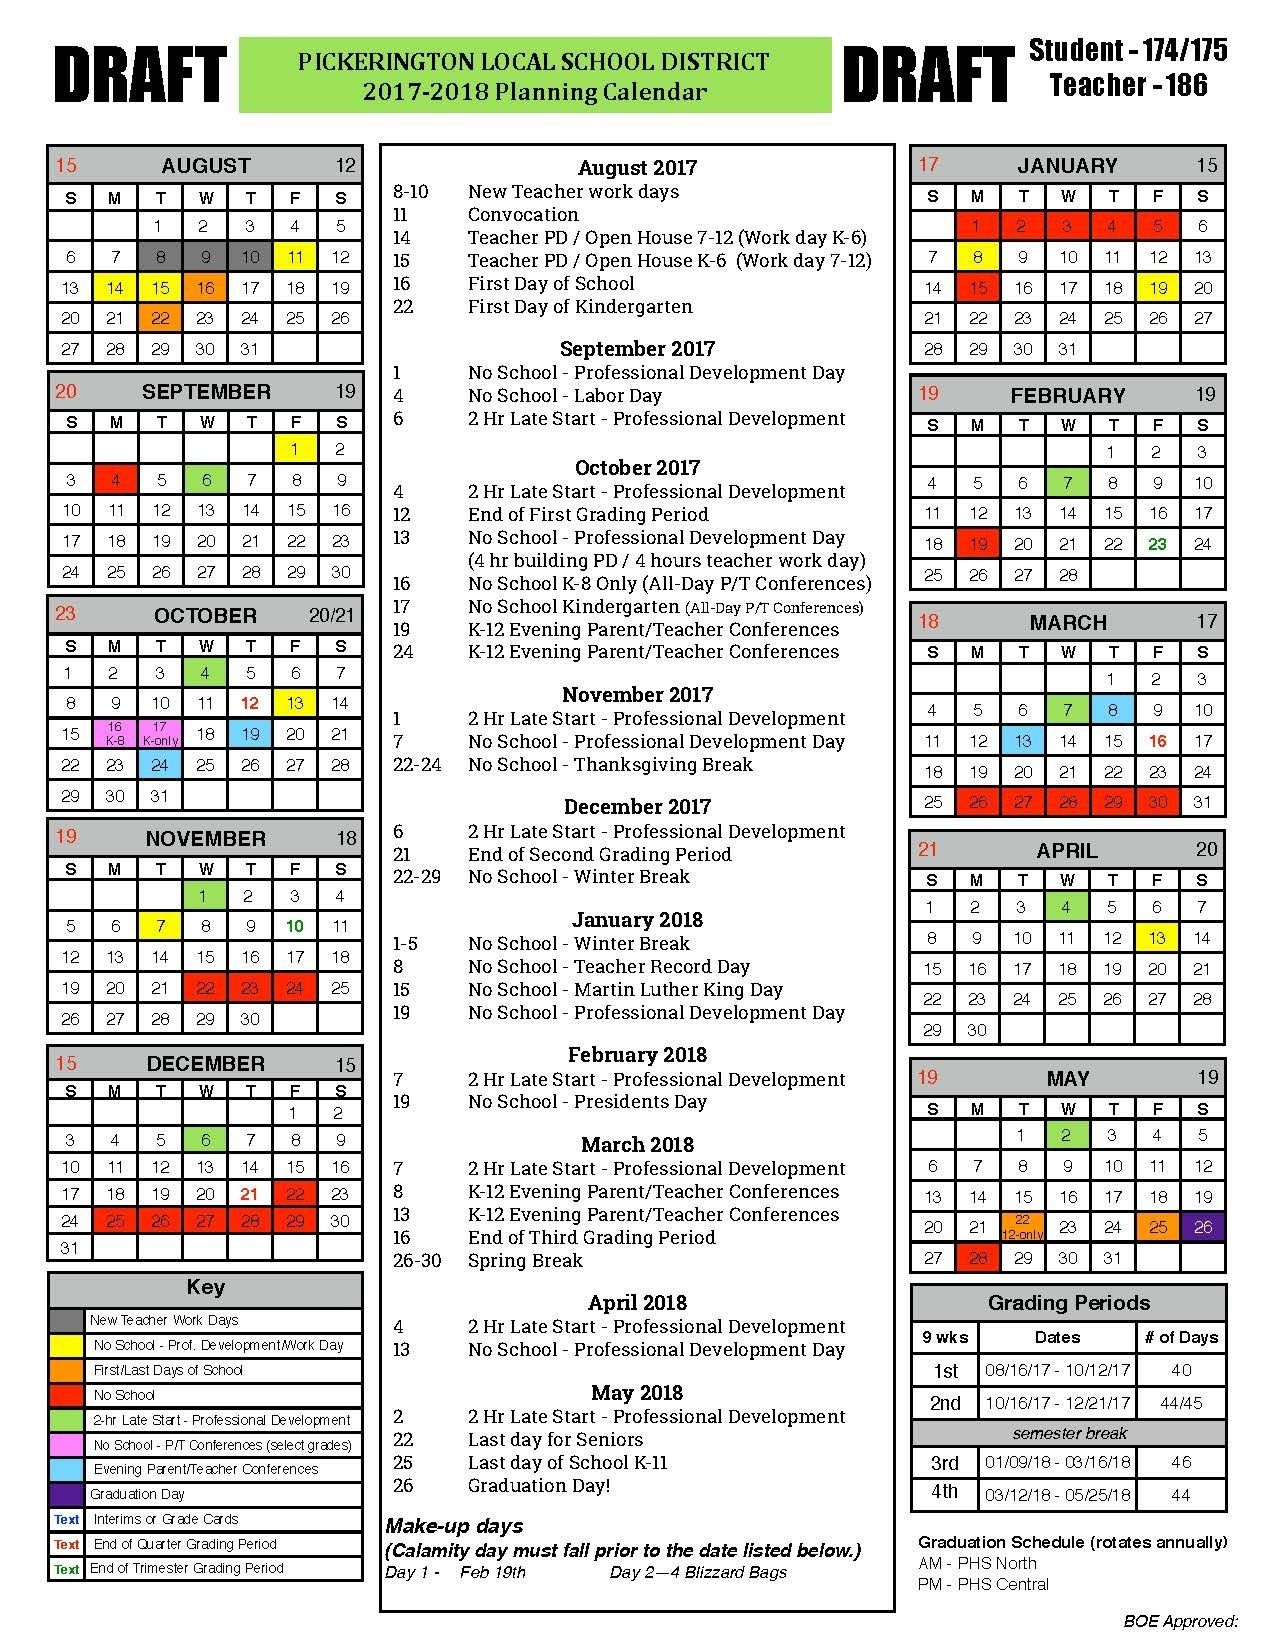 School Board To Consider 2017-18 Calendar January 9 - Pickerington Incredible District 2 School Calendar